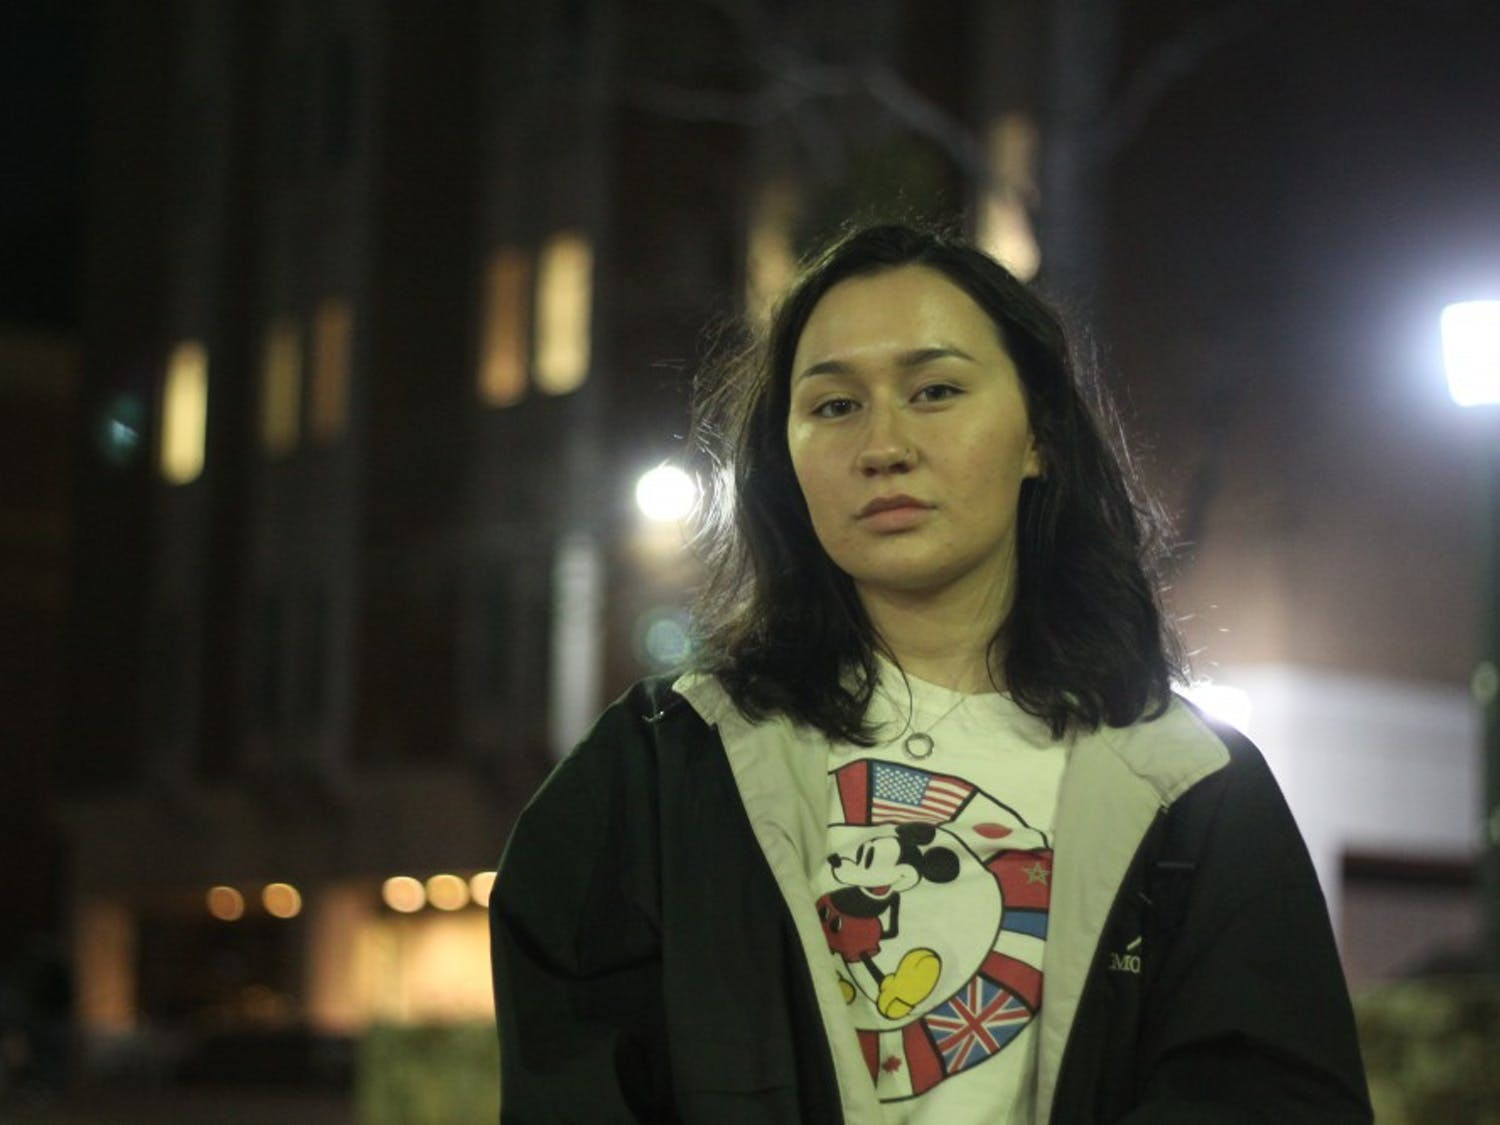 """Elizabeth Ordoñez, a sophomore biology and global studies major, is one of two leaders for Mi Pueblo, a Latinx student organization at UNC-Chapel Hill, working to organize the """"Love Knows No Borders"""" vigil that will be held in the Pit Thursday, Feb. 14, 2019 at 5:15 p.m., Valentine's Day."""